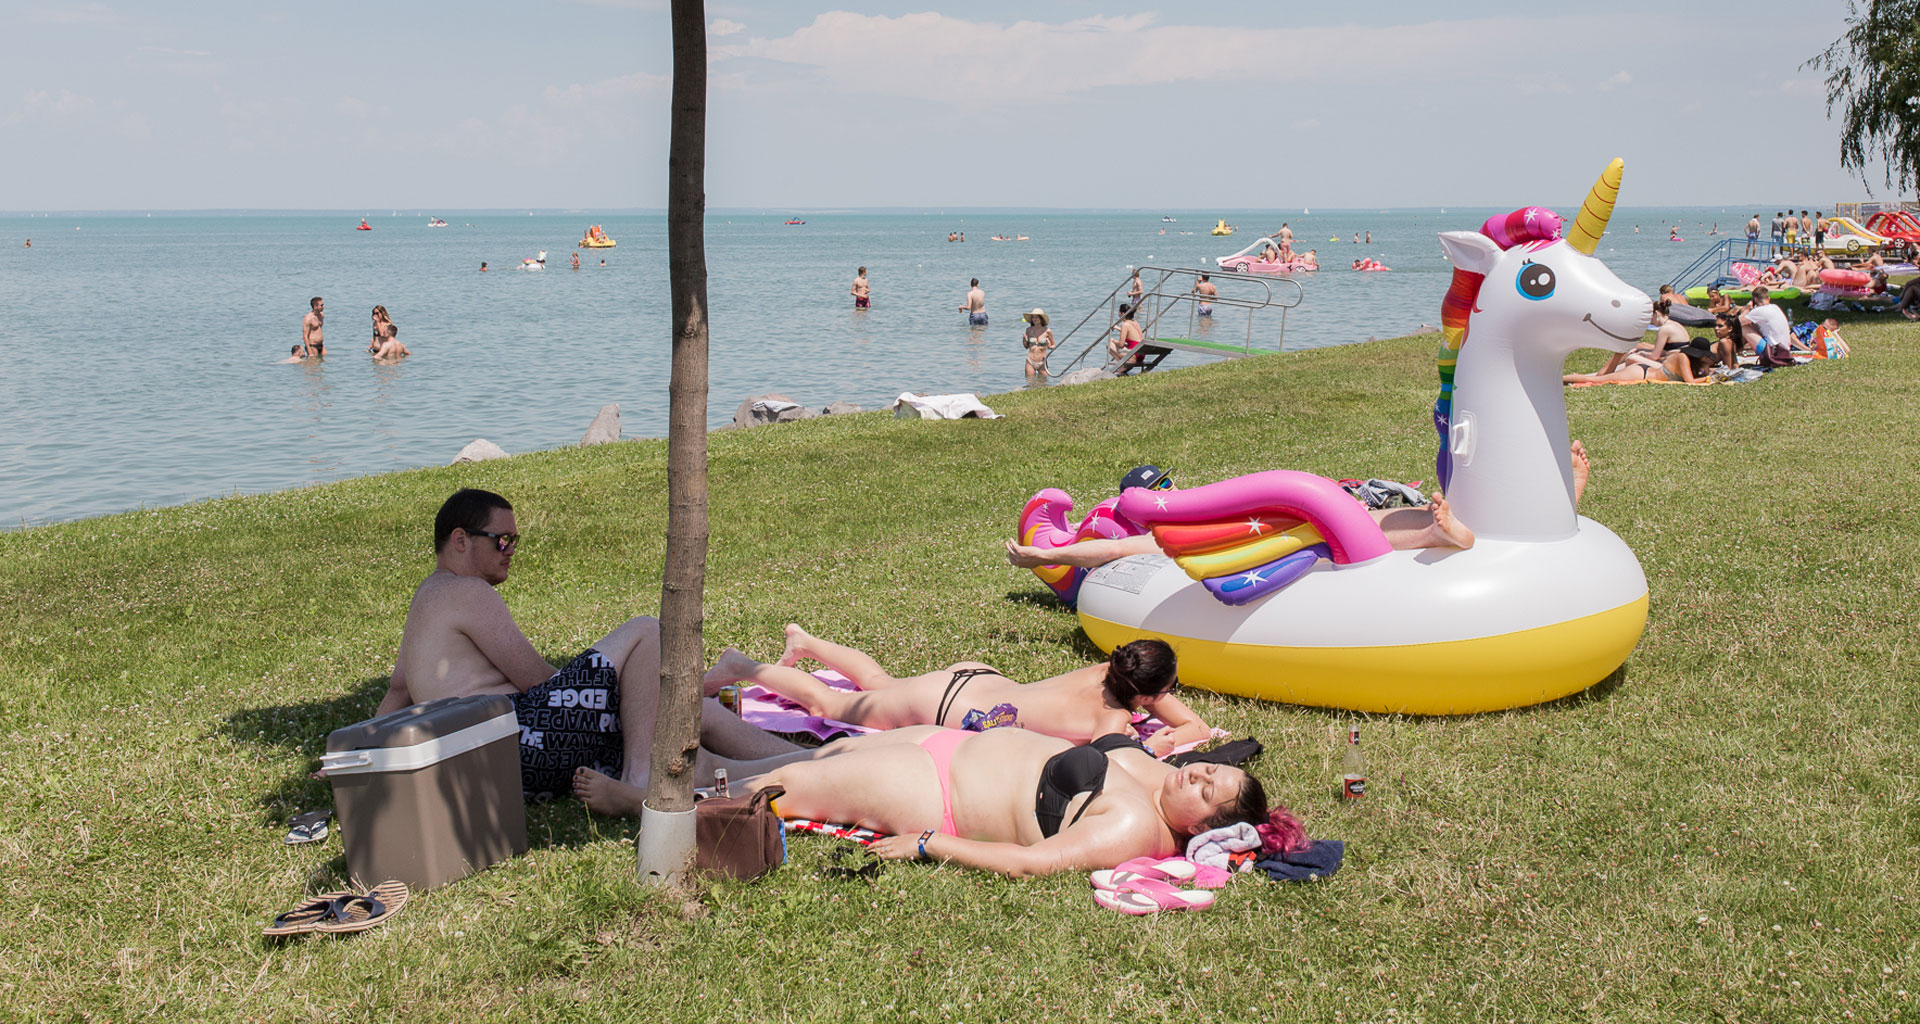 Discover the wild side of Lake Balaton, Hungary's hedonistic summer escape